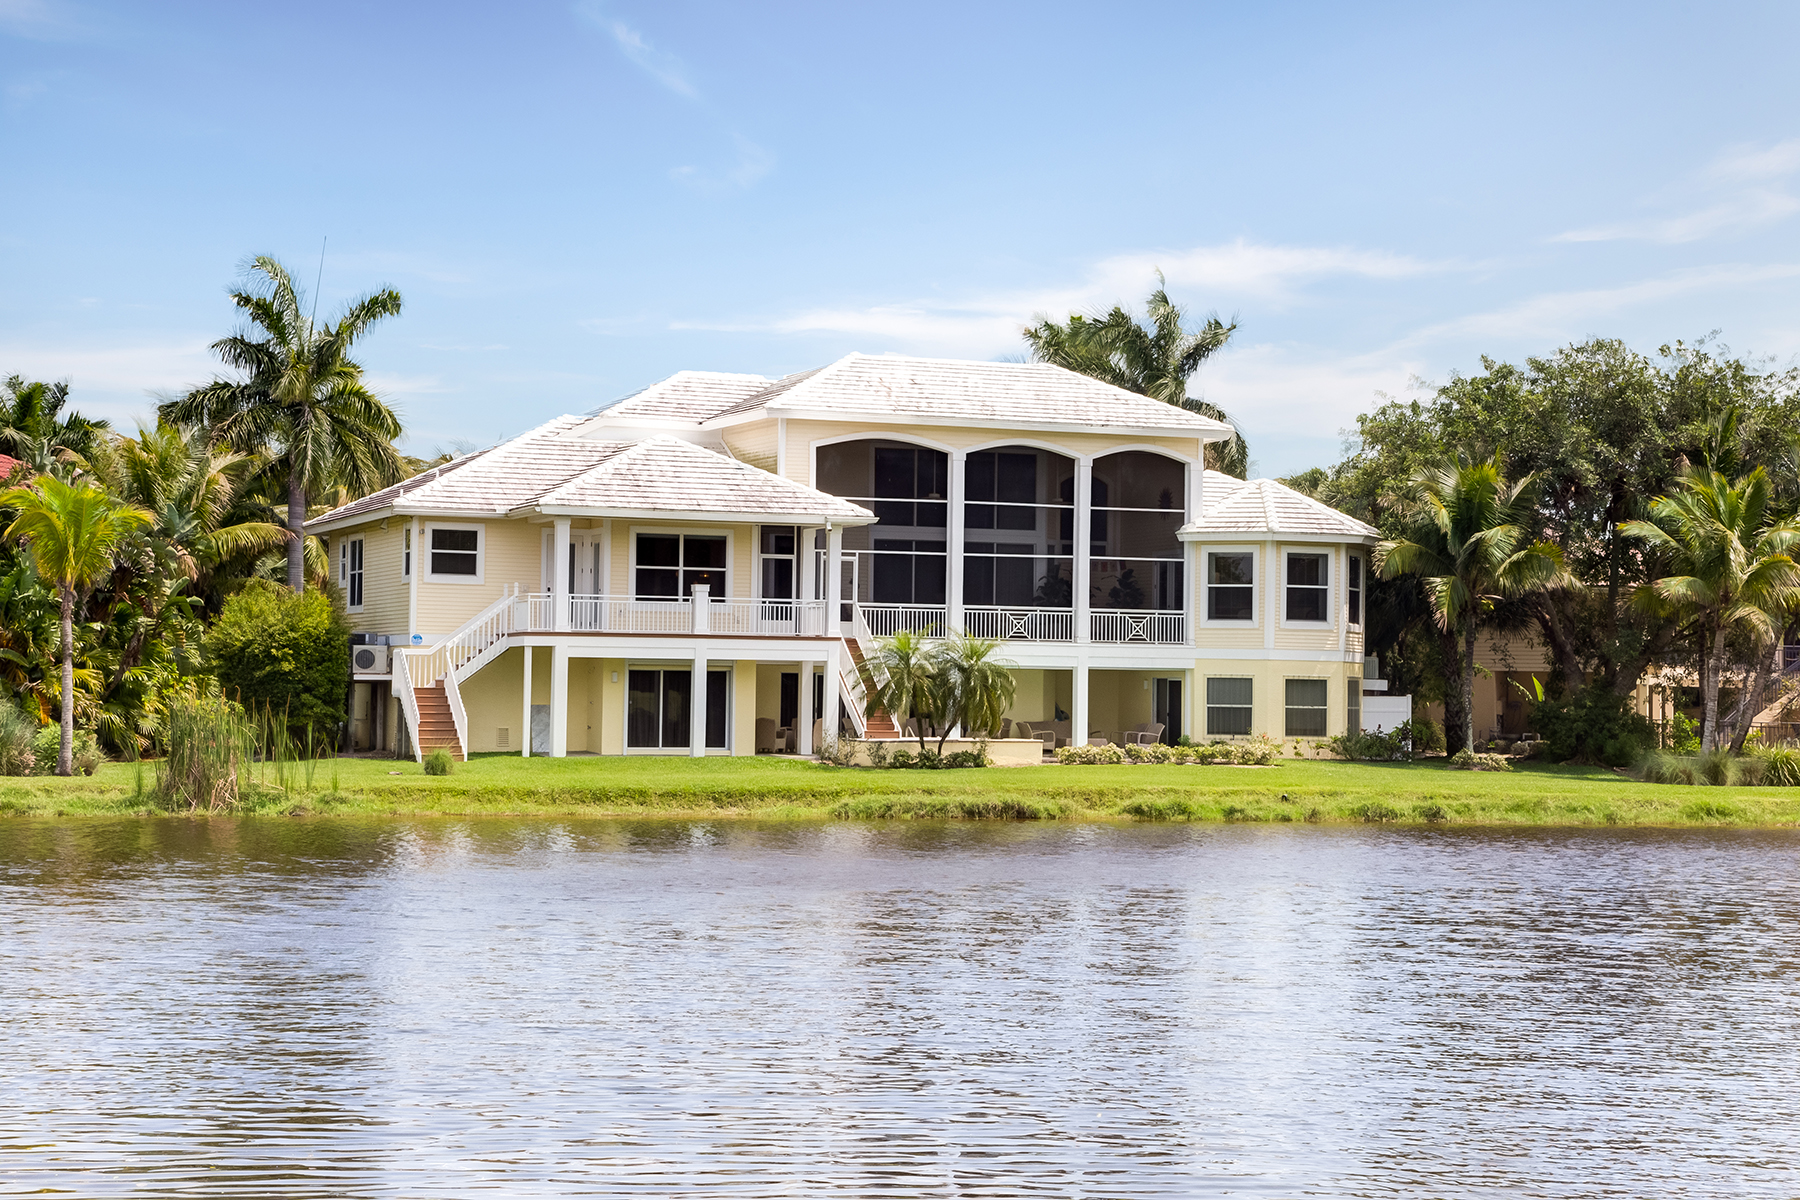 Maison unifamiliale pour l Vente à SANIBEL 1360 Eagle Run Dr Sanibel, Florida, 33957 États-Unis